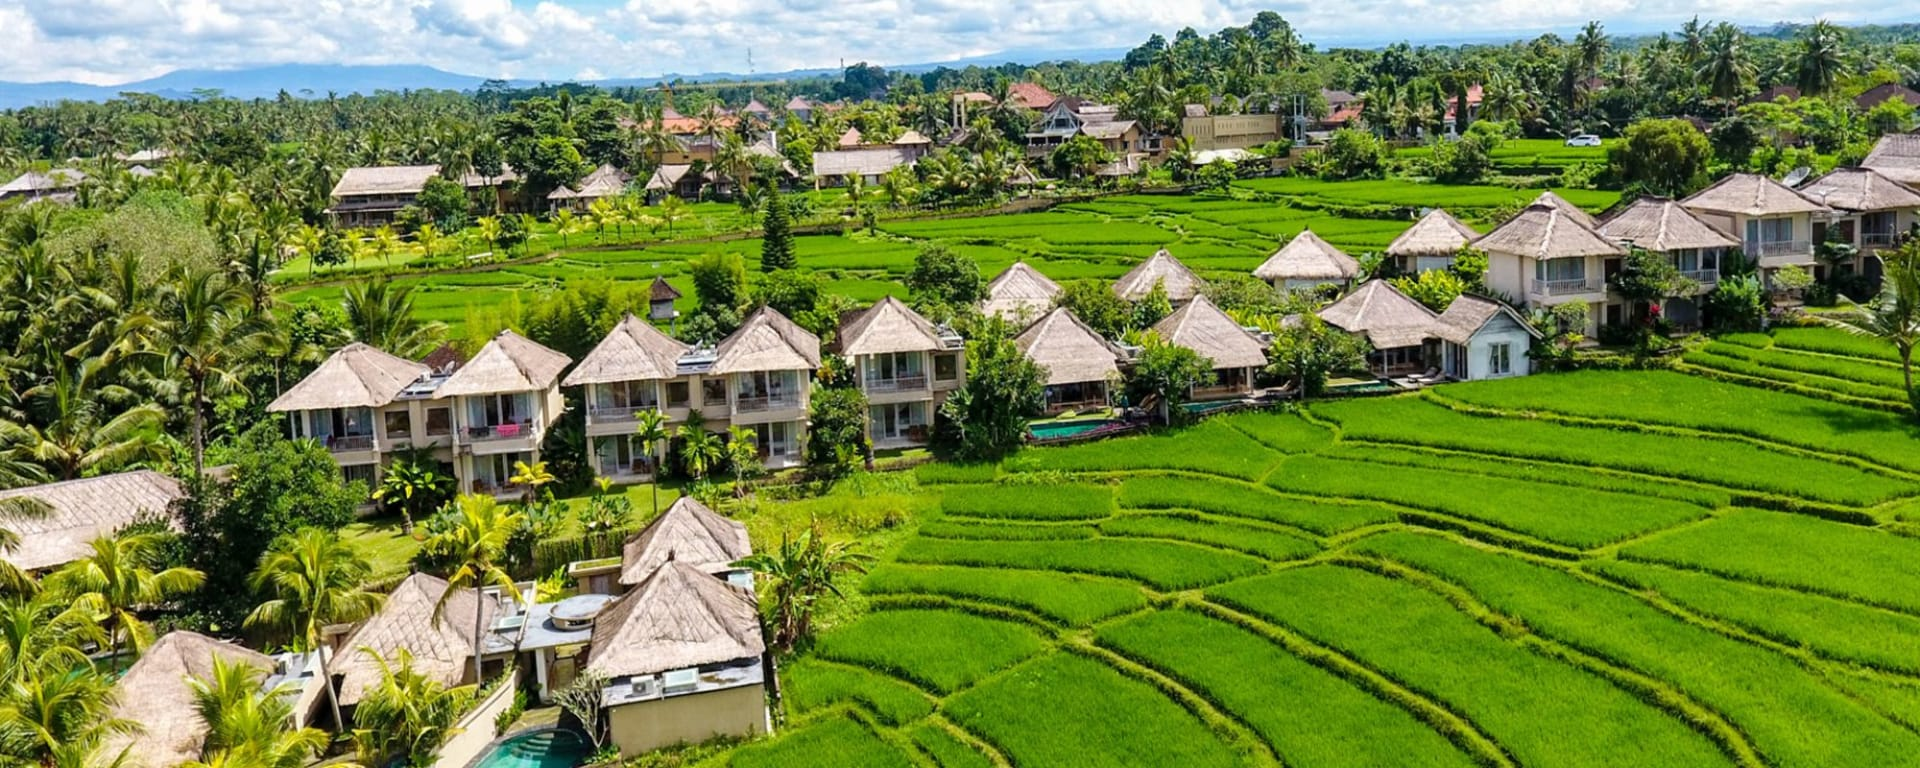 Atta Mesari Resort & Villas in Ubud: Exterior